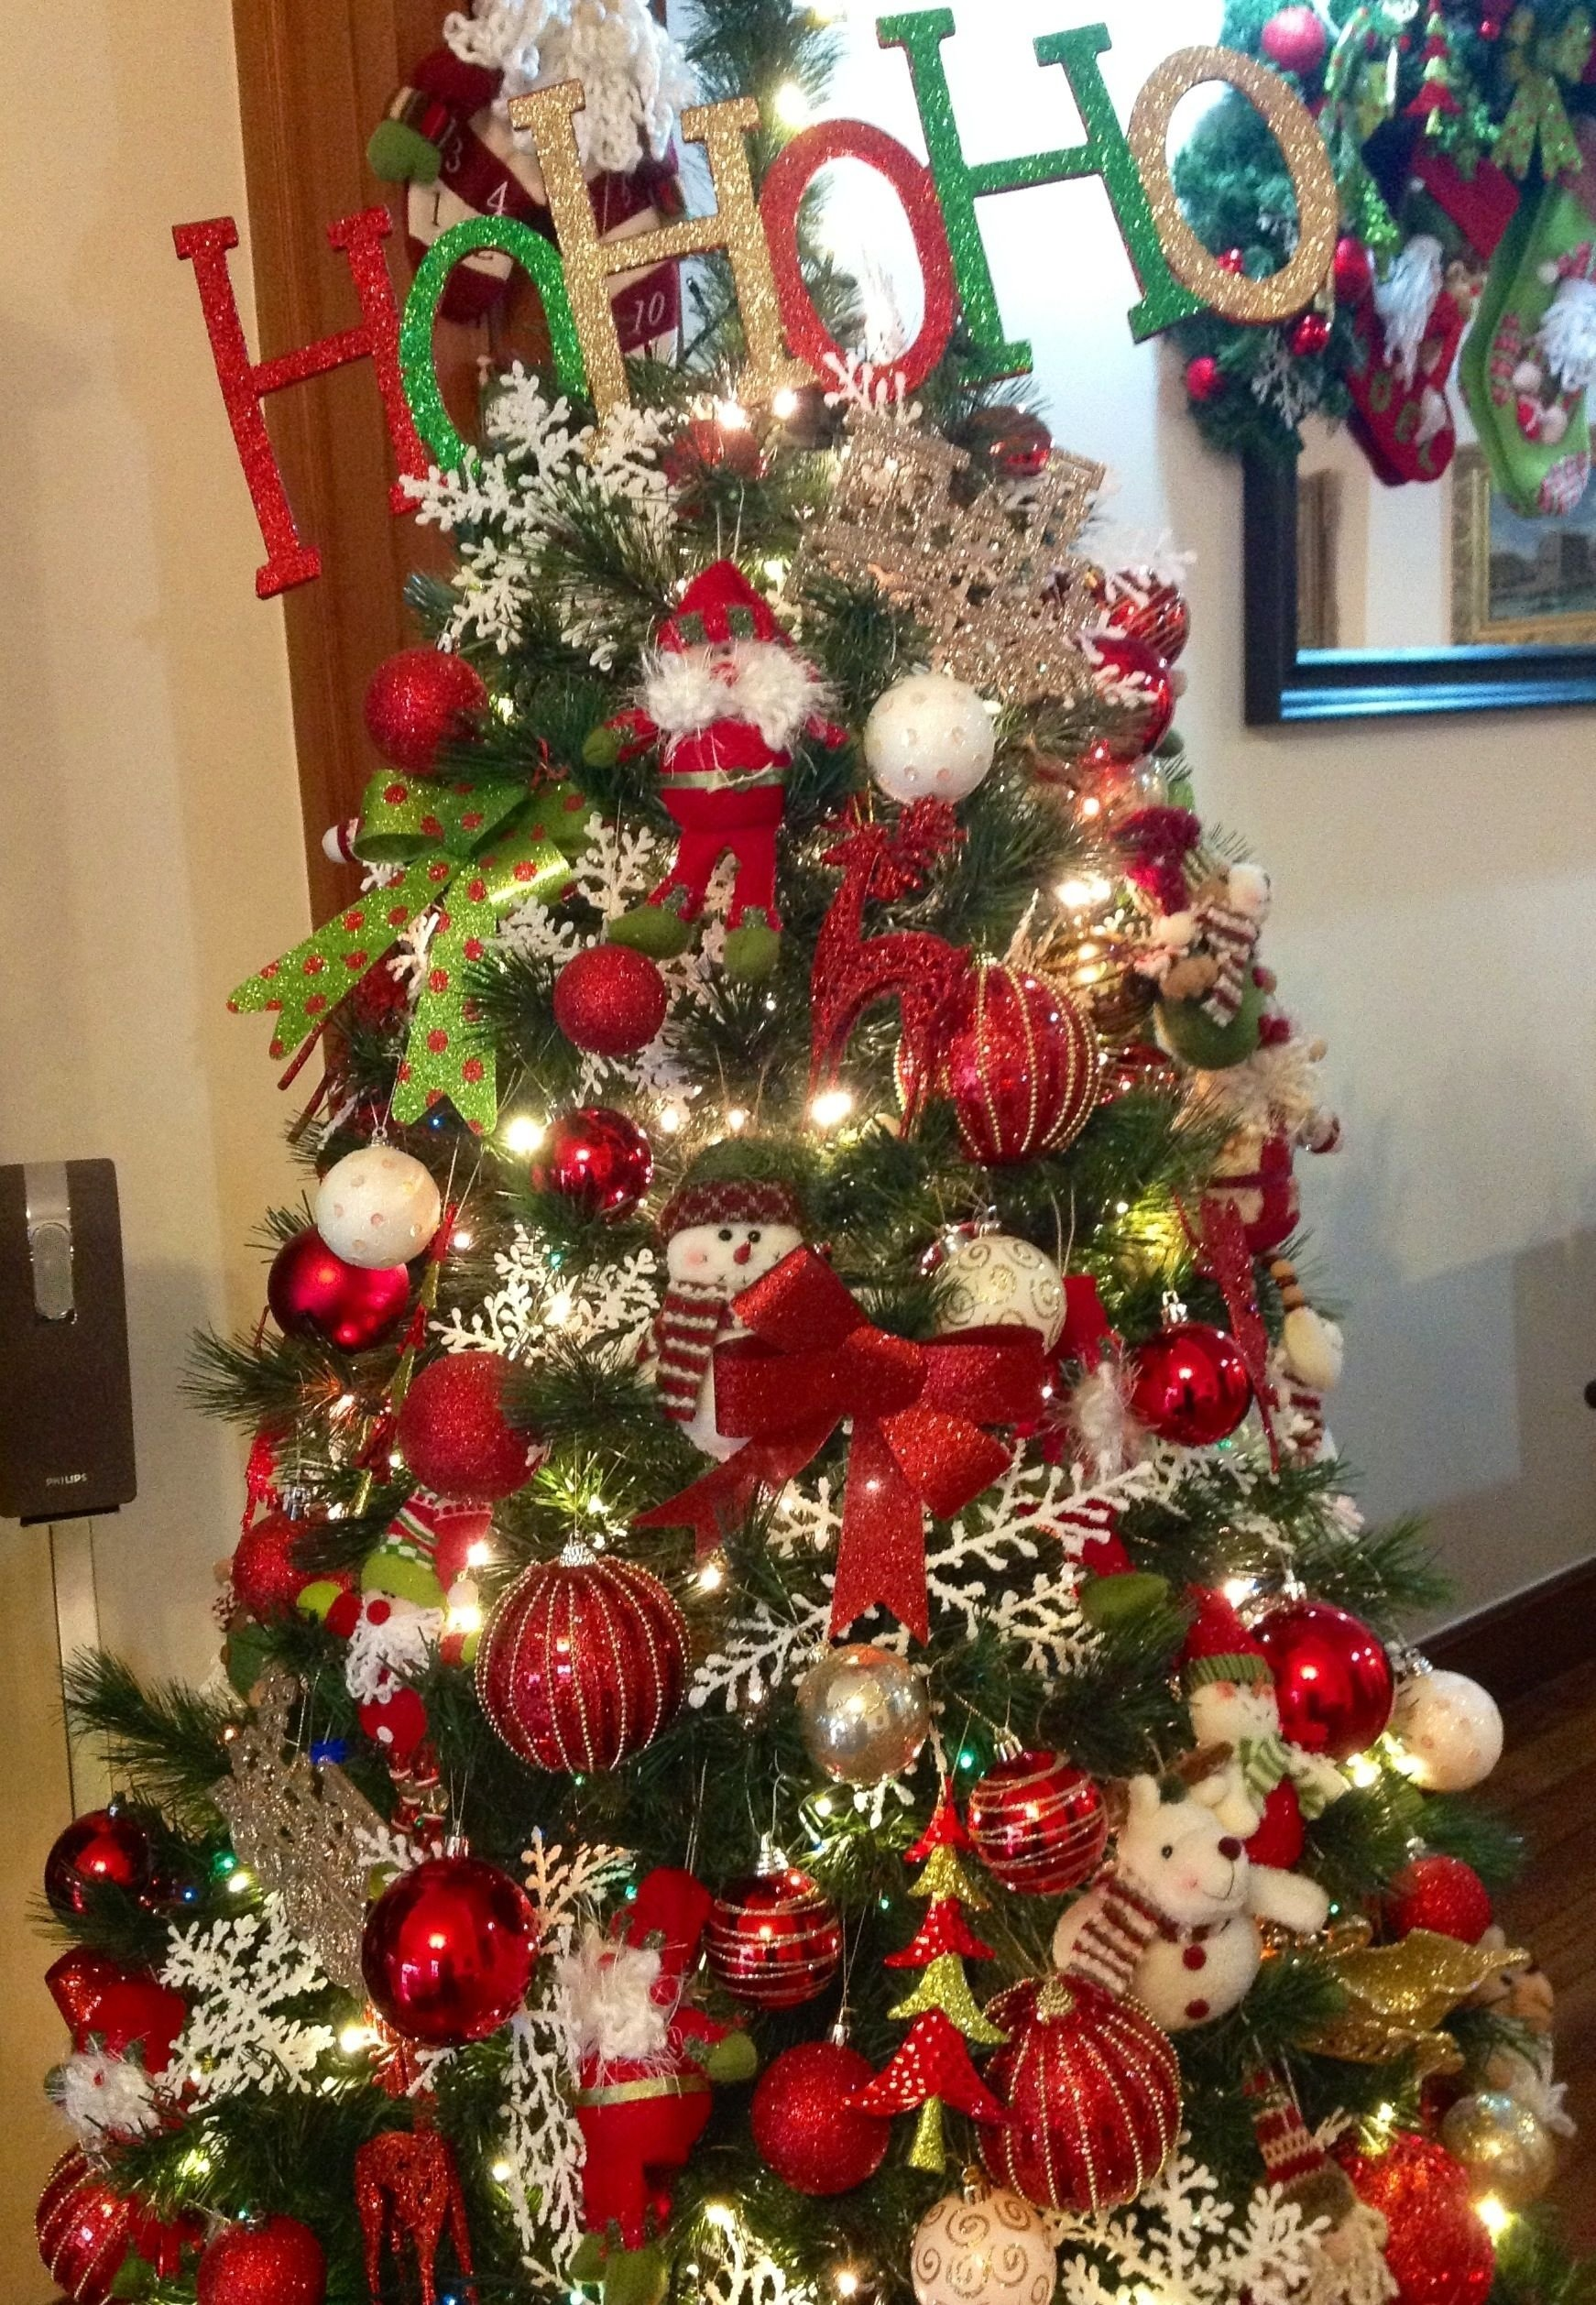 10 Stunning Red Green And Gold Christmas Tree Ideas red green and gold christmas tree ideas for new old home 2021